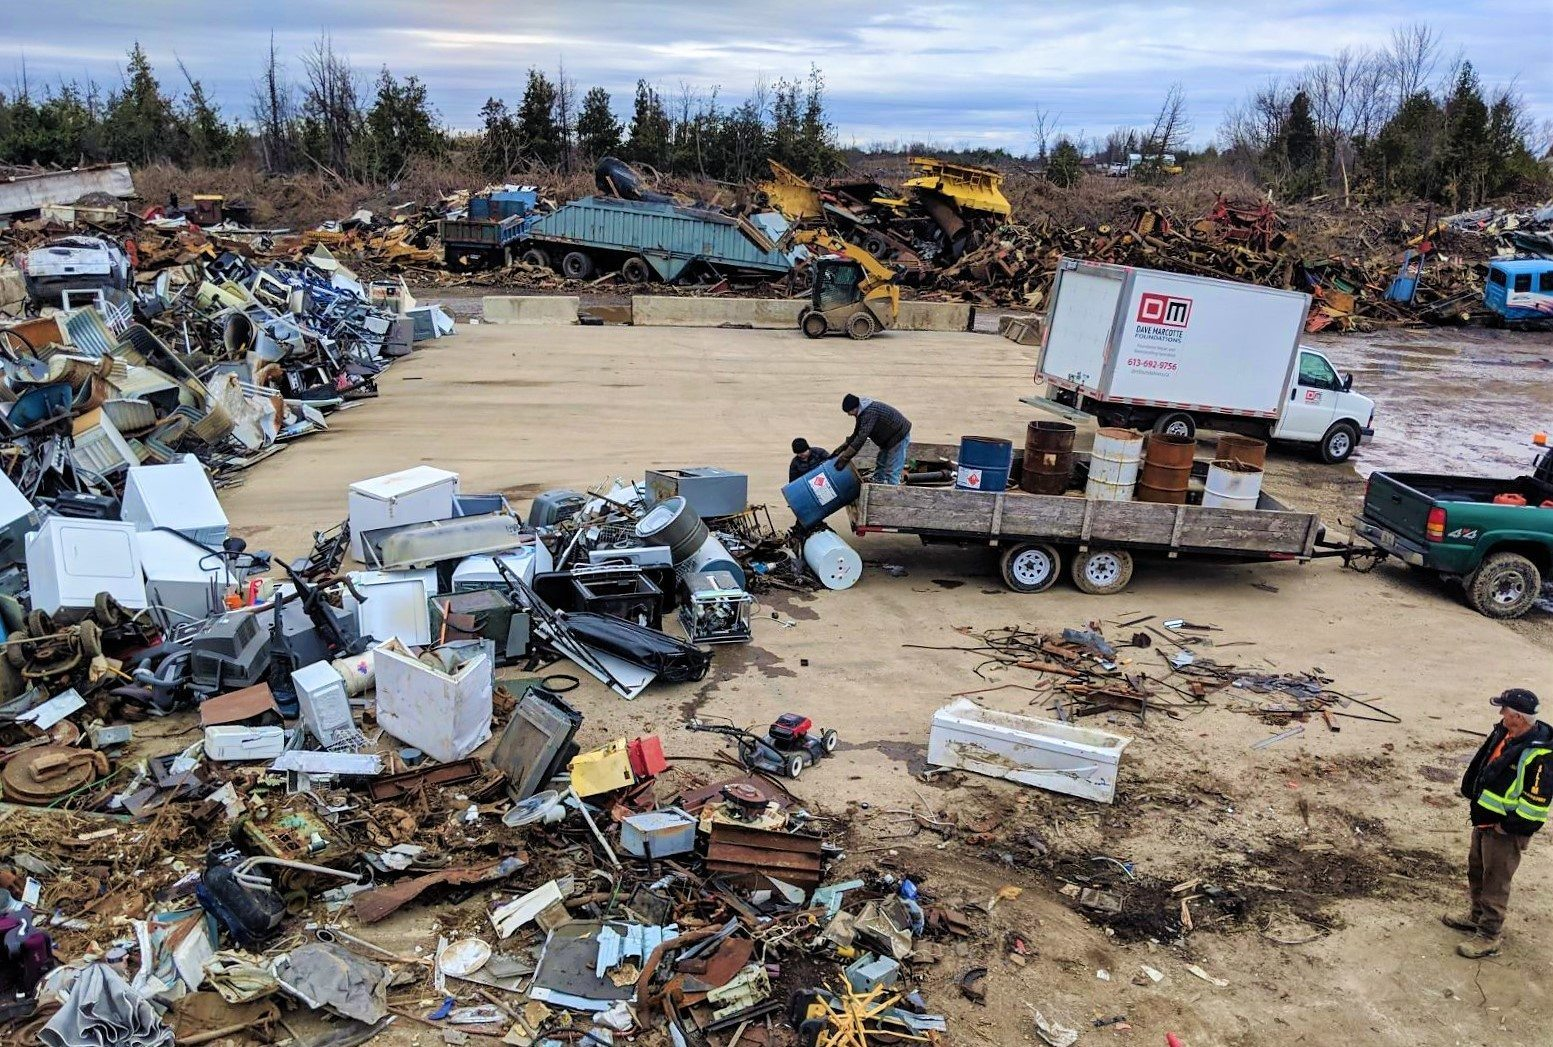 Ottawa Scrap Metal Recycling Yard